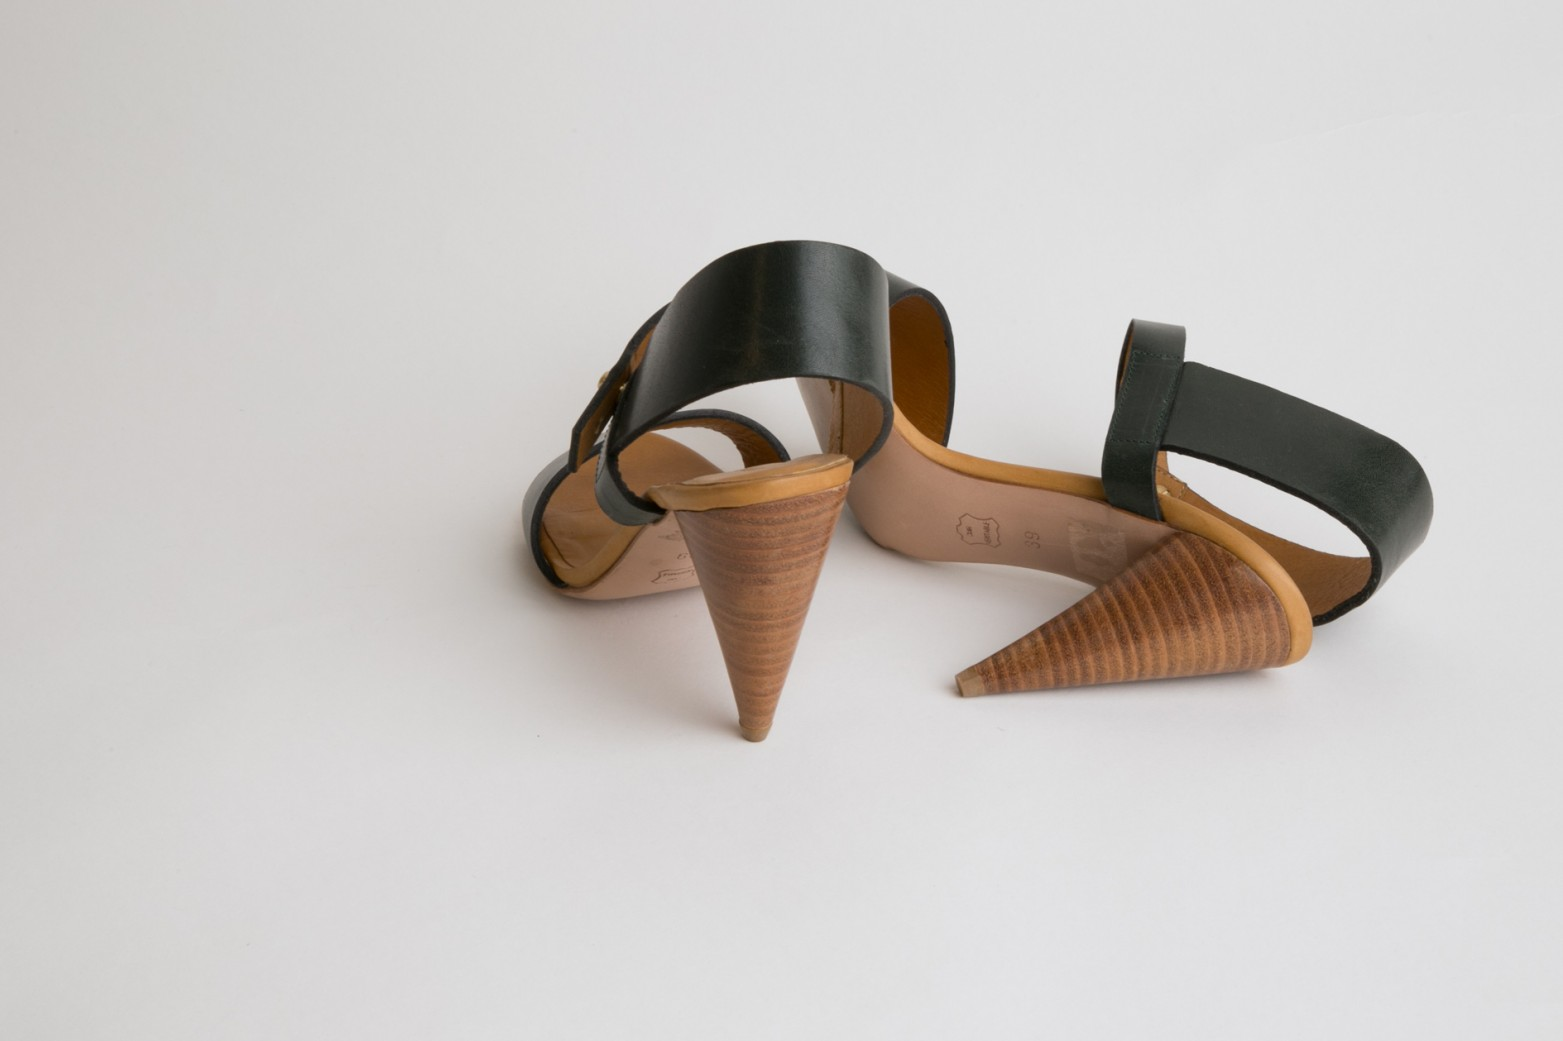 Christophe Lemaire Leather Sandals